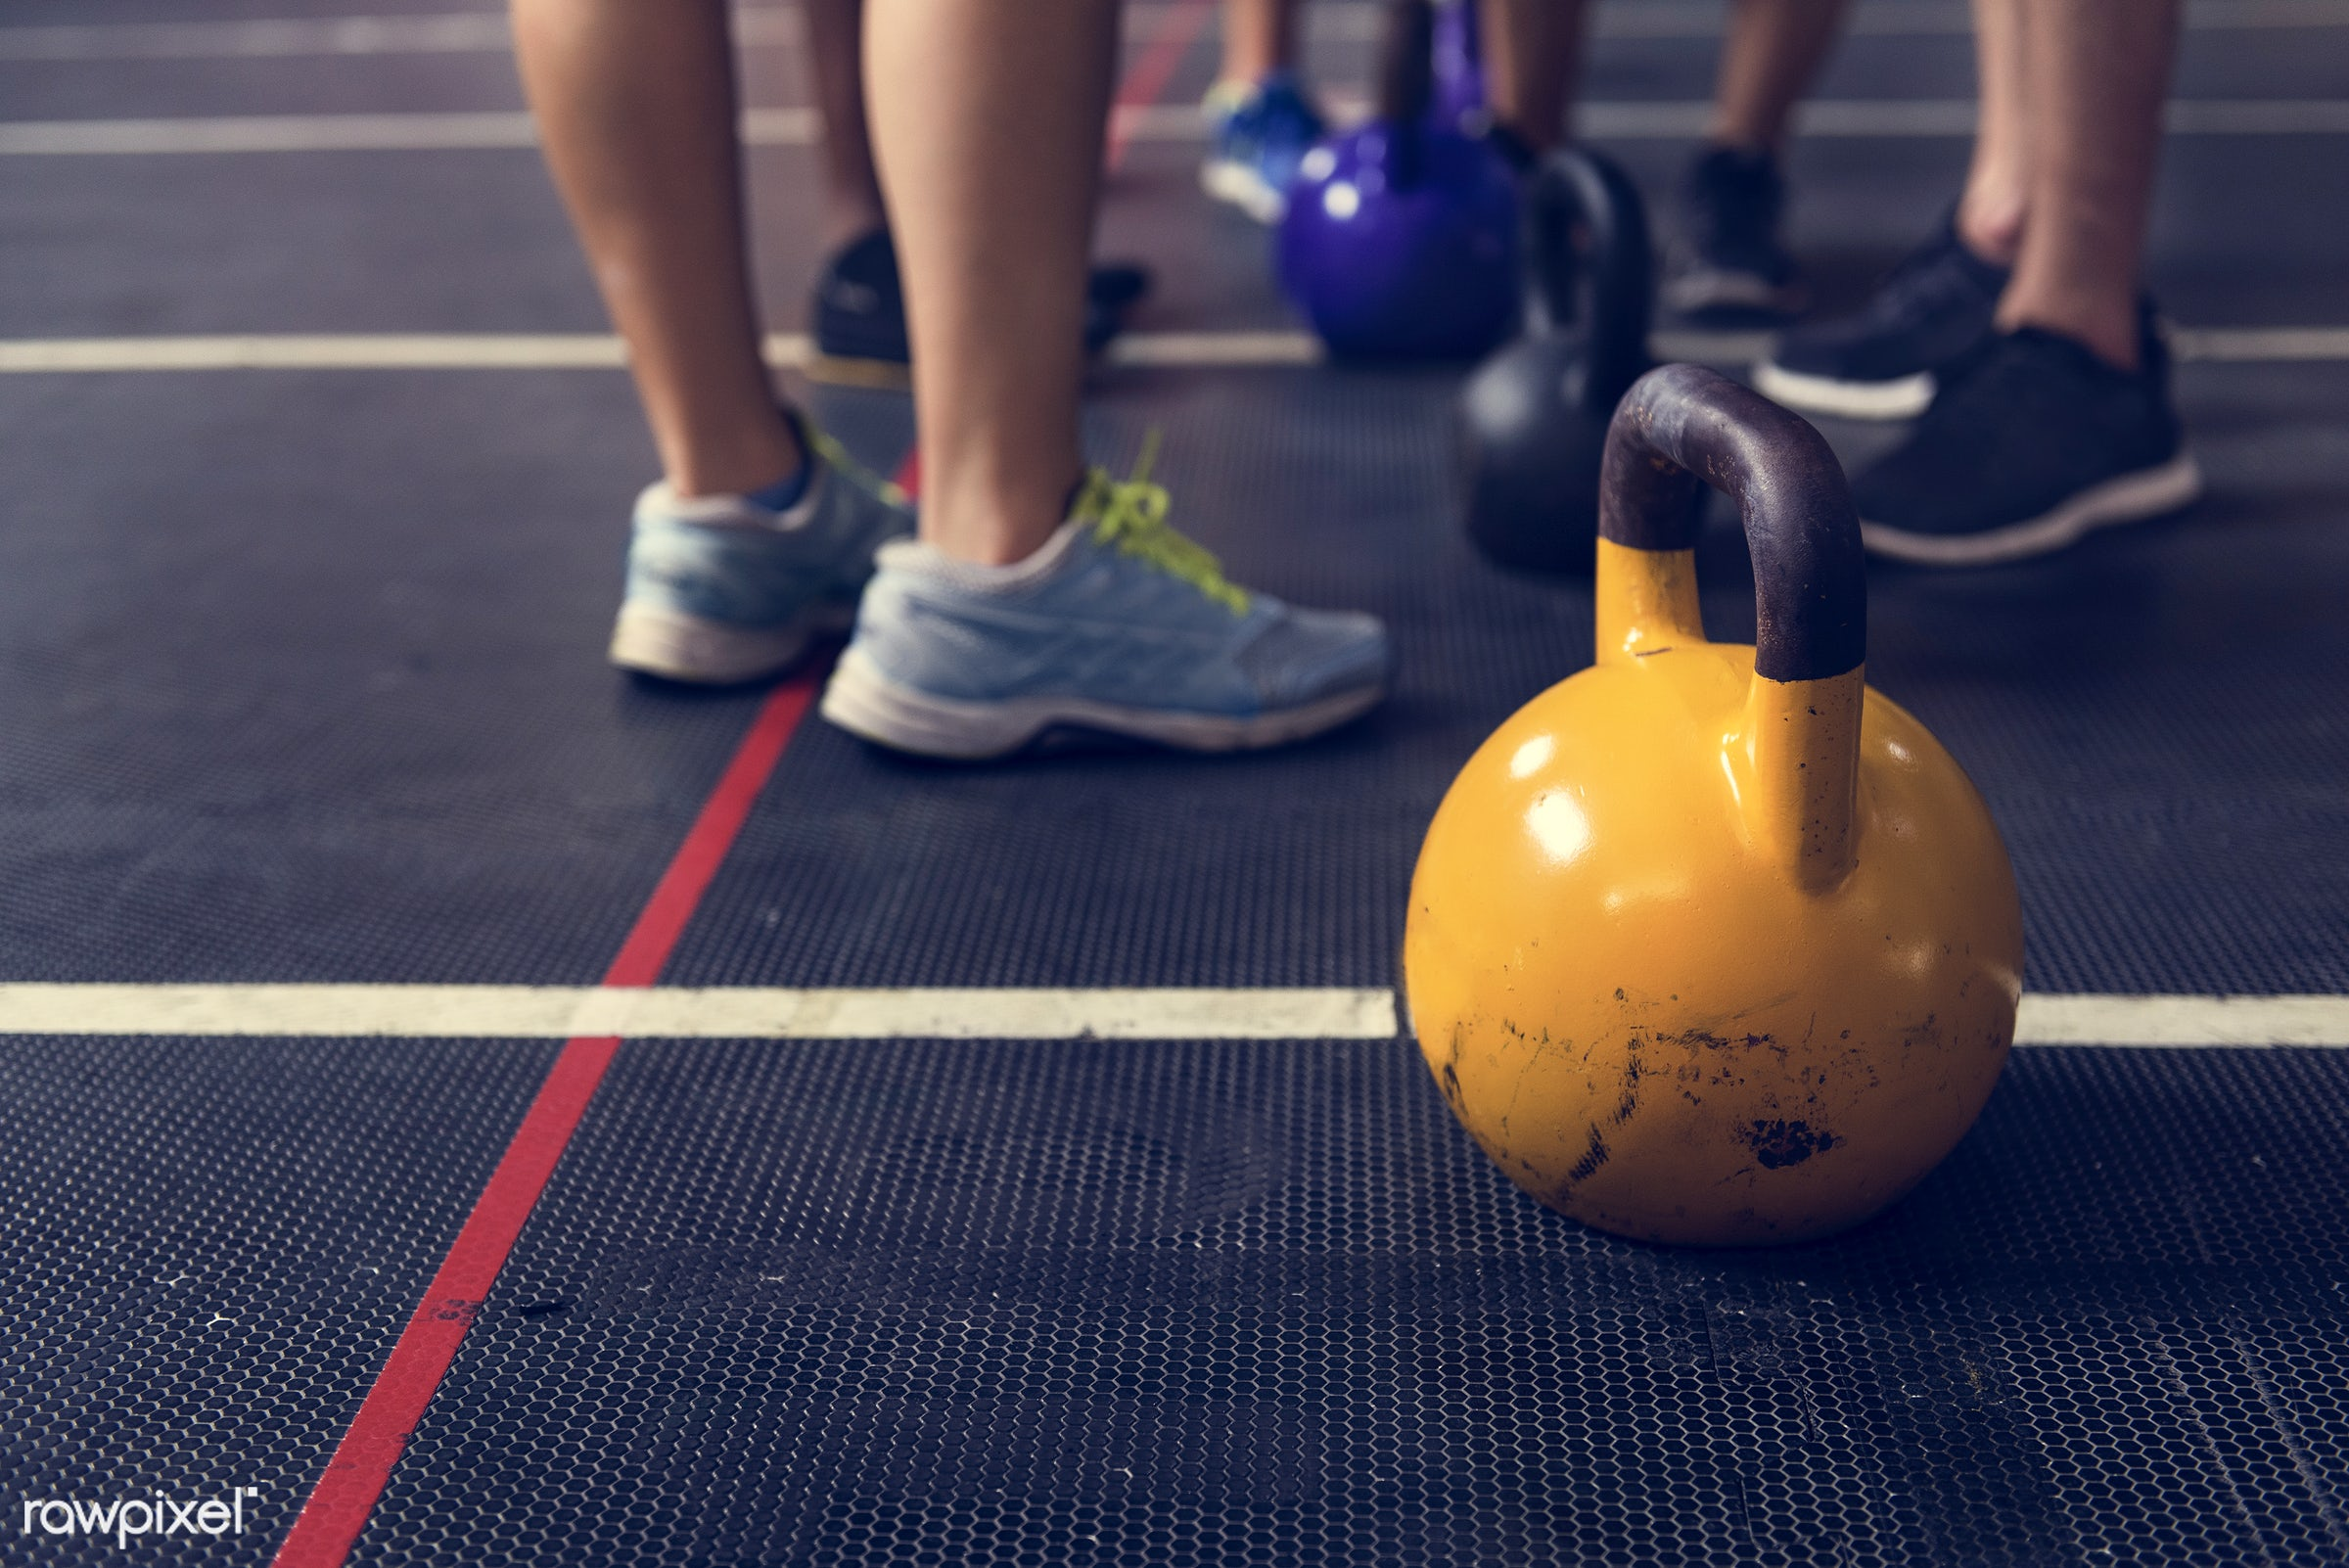 At the gym - active, activity, athlete, athletic, diverse, diversity, equipment, exercise, fit, fitness, footwear, free...